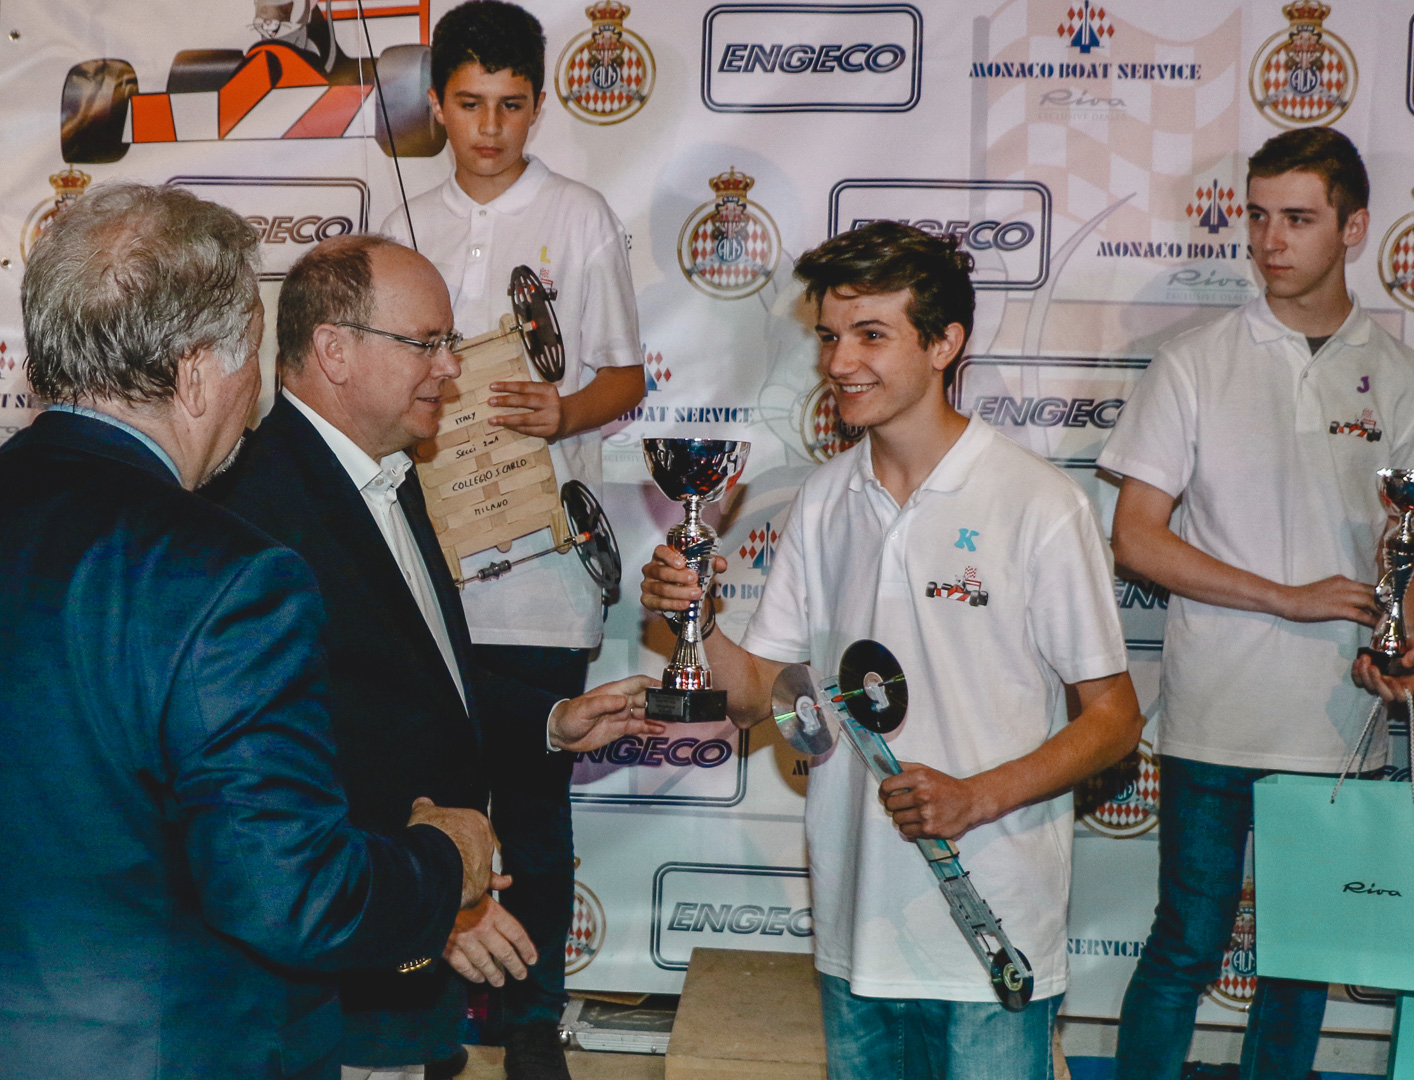 a photo of me being awarded by the Prince of Monaco